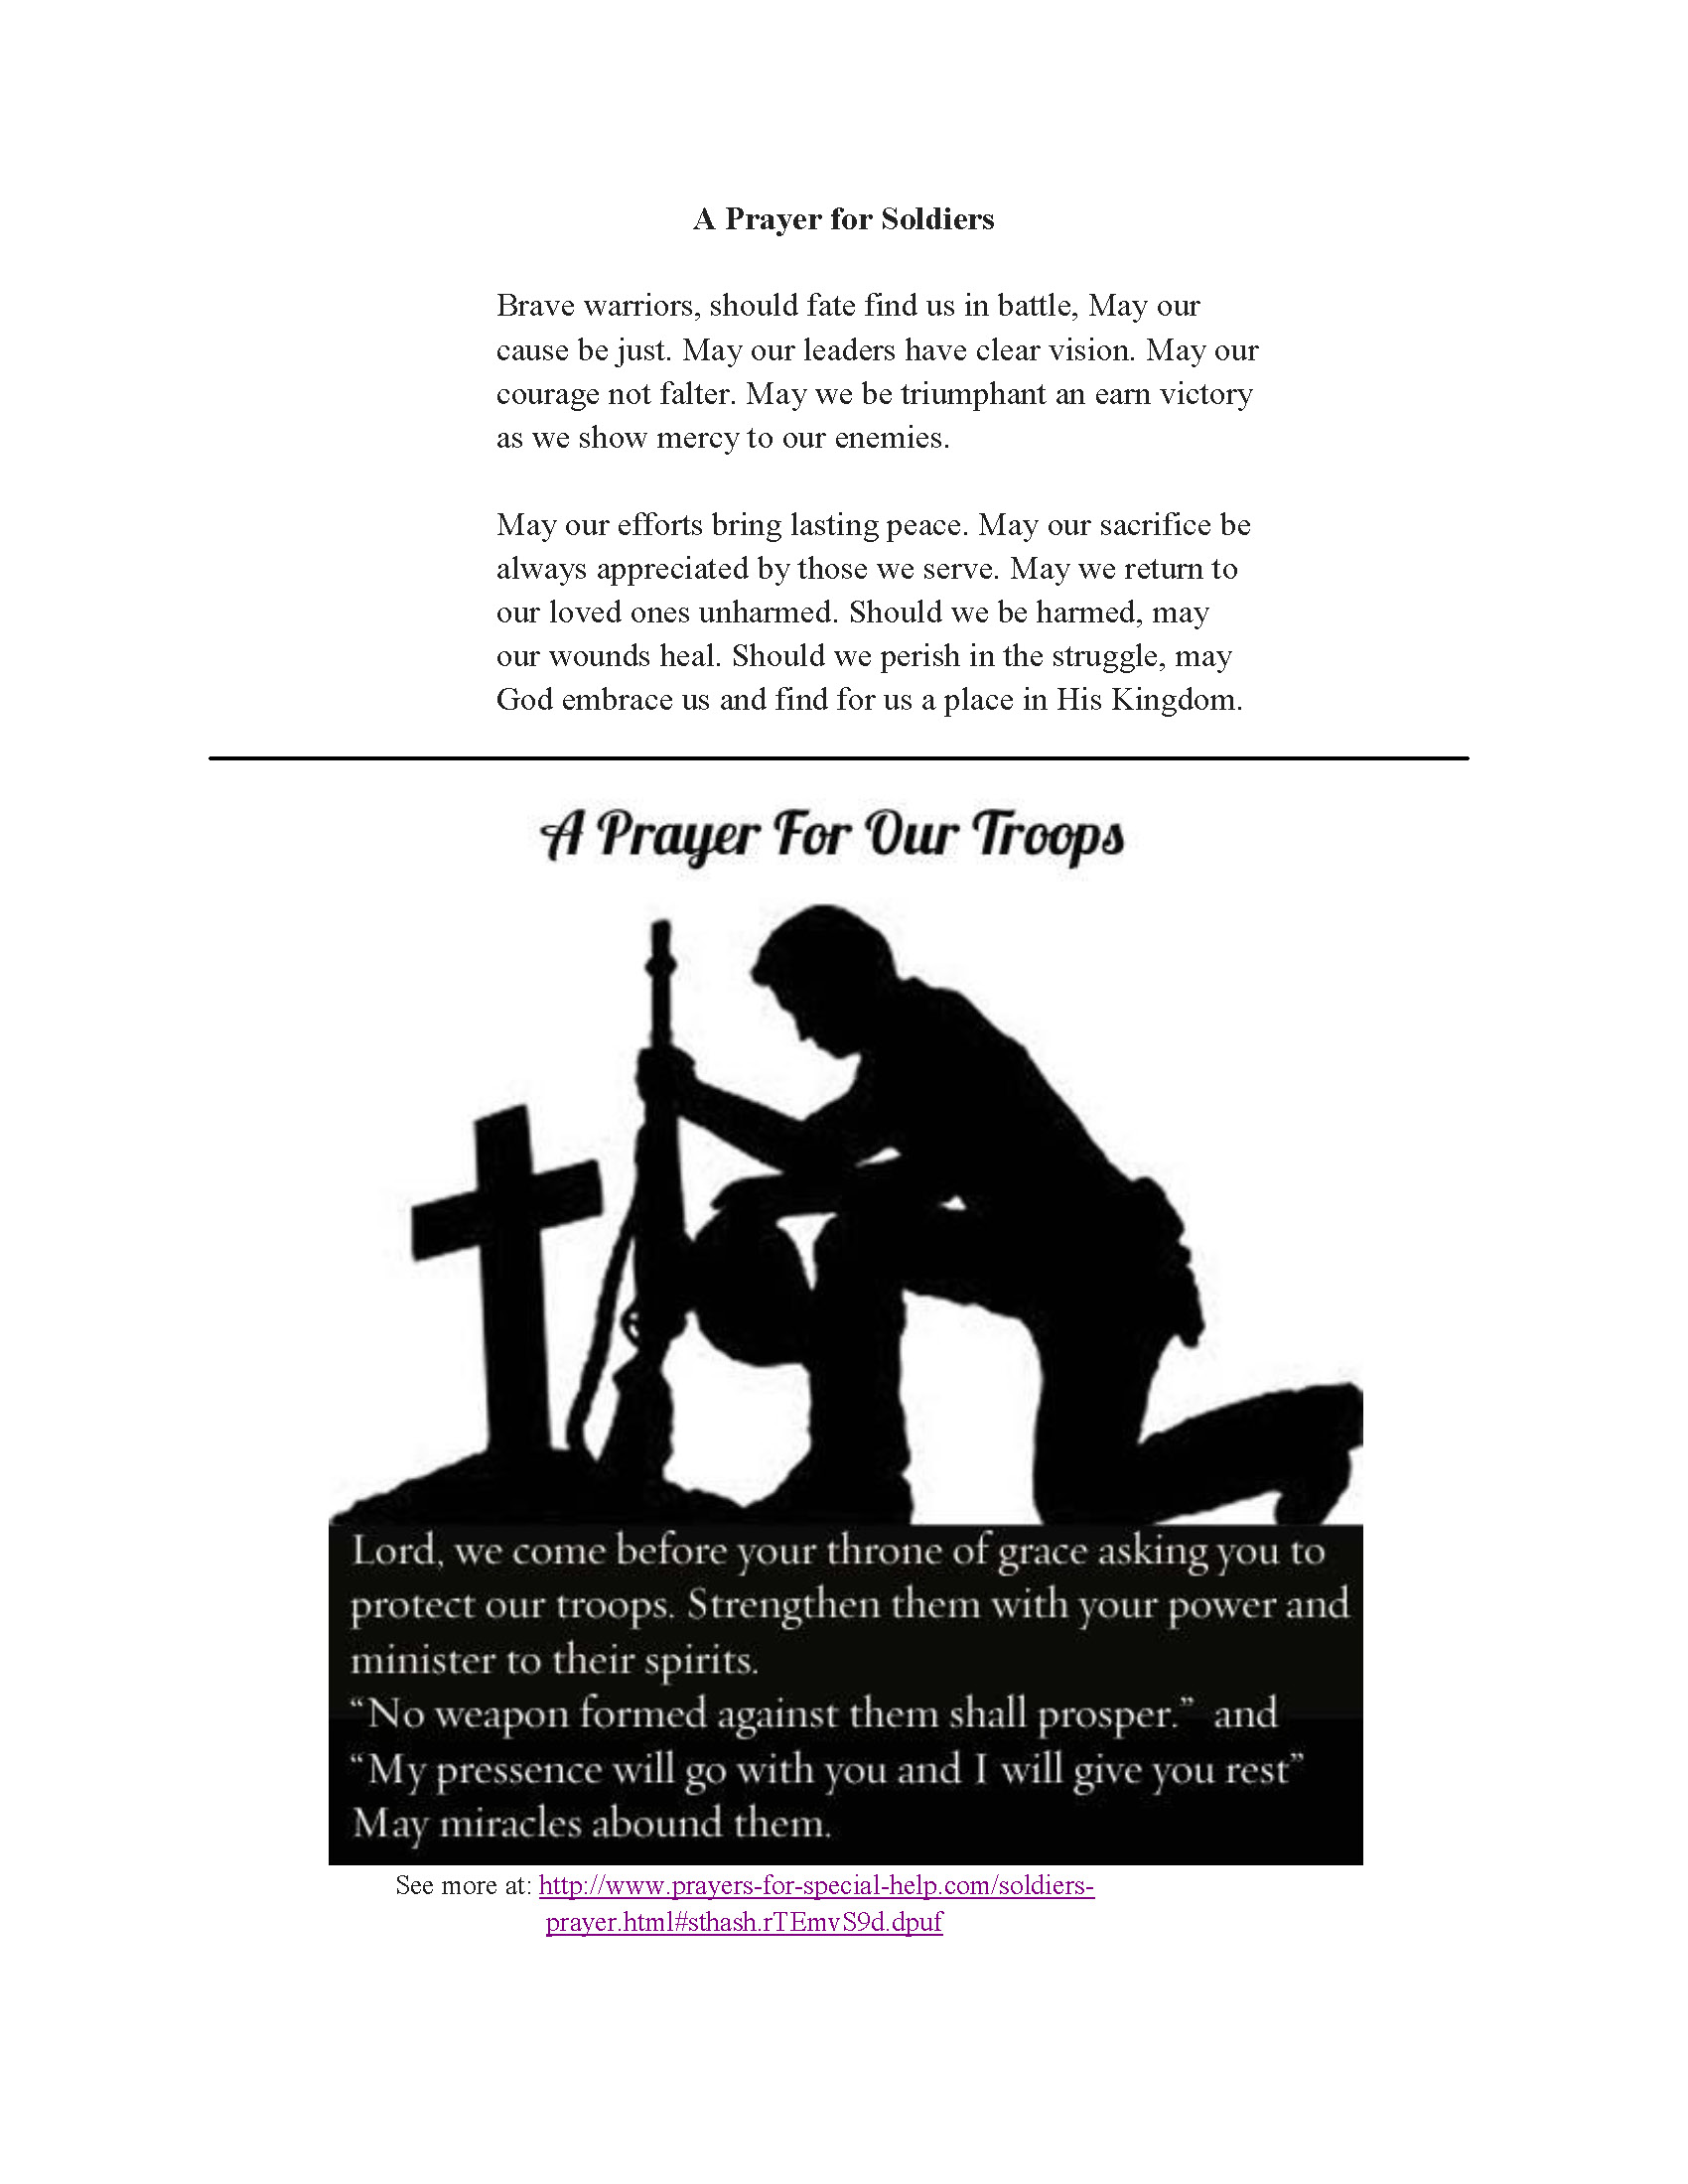 Catholic prayer for courage